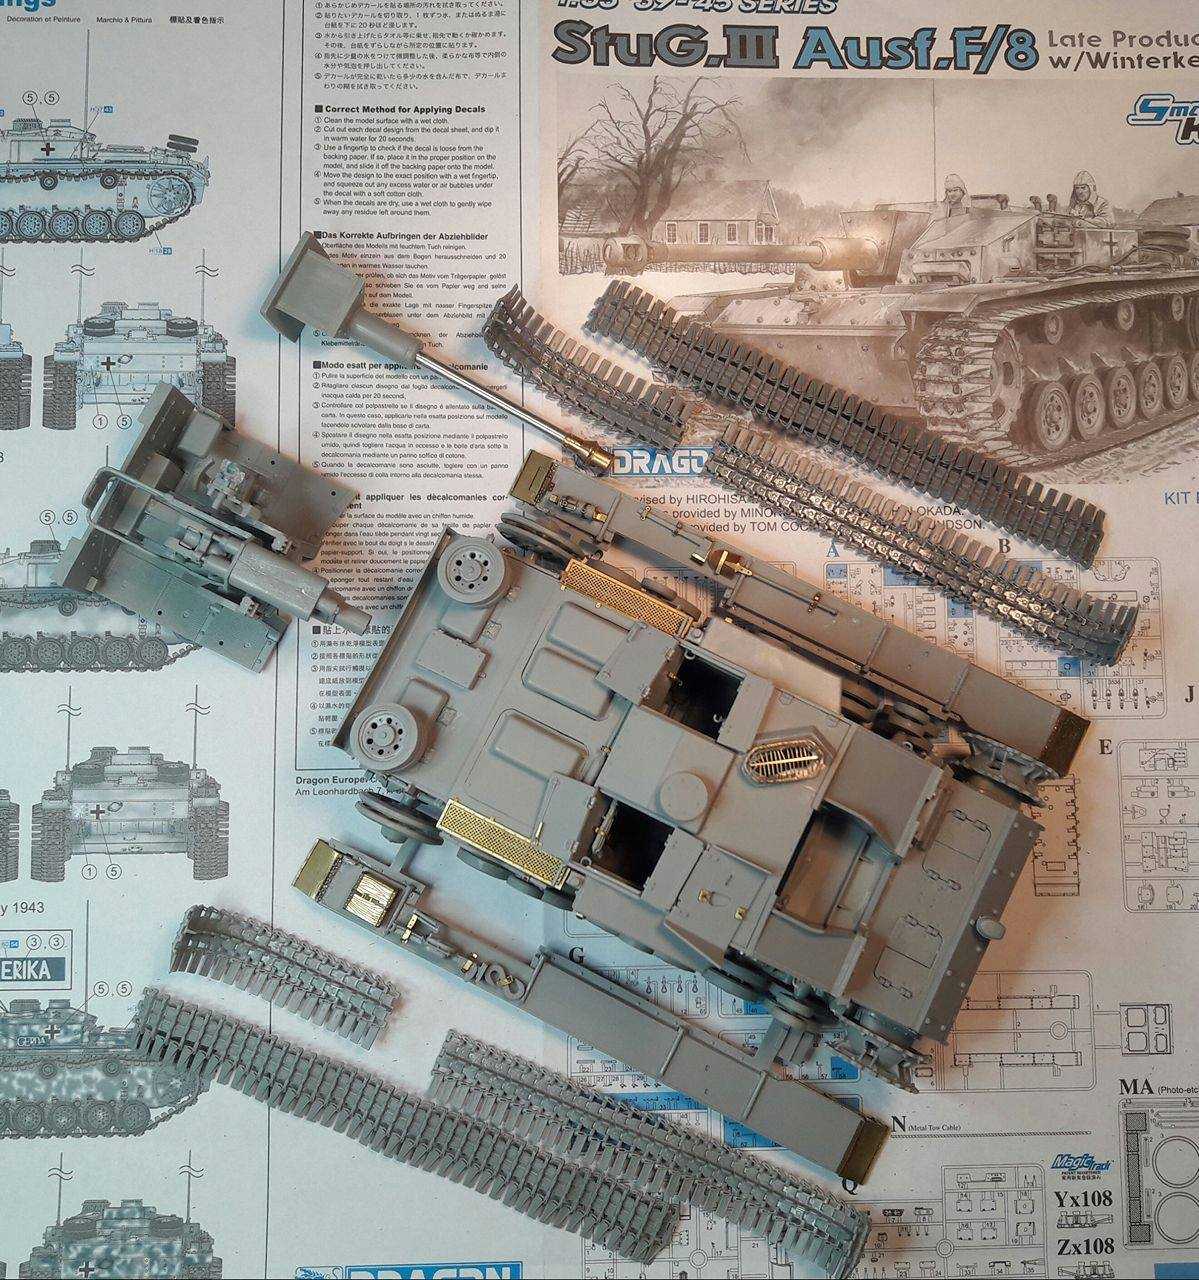 StuG.III Ausf.F/8 late production w/Winterketten - 1/35 - Page 2 183638STUGMajorParts